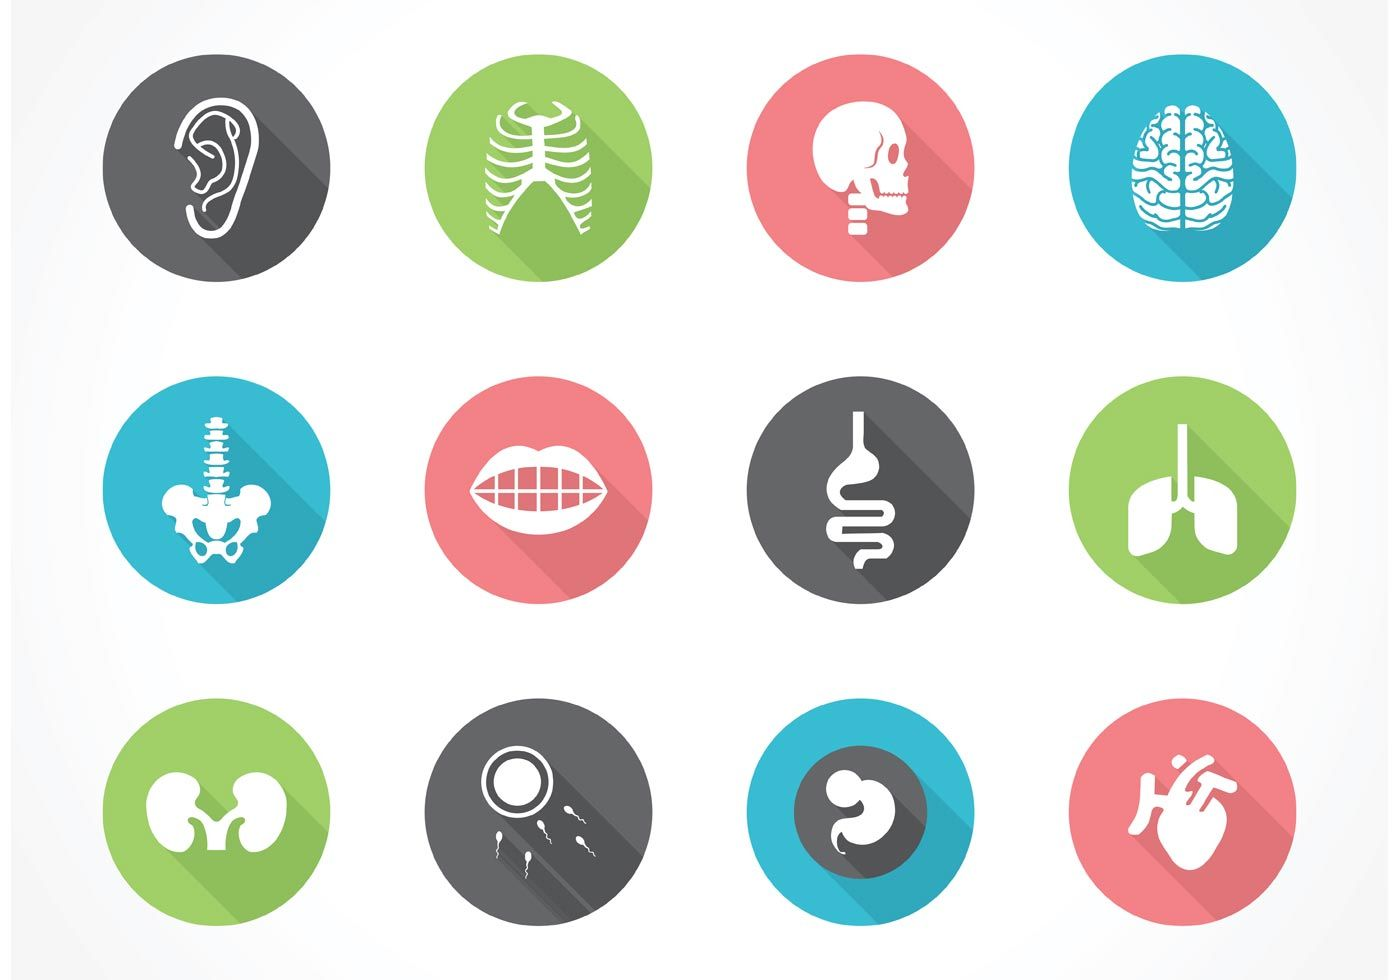 Free Vector Human Anatomy Icon Set | Medical Design | Pinterest ...